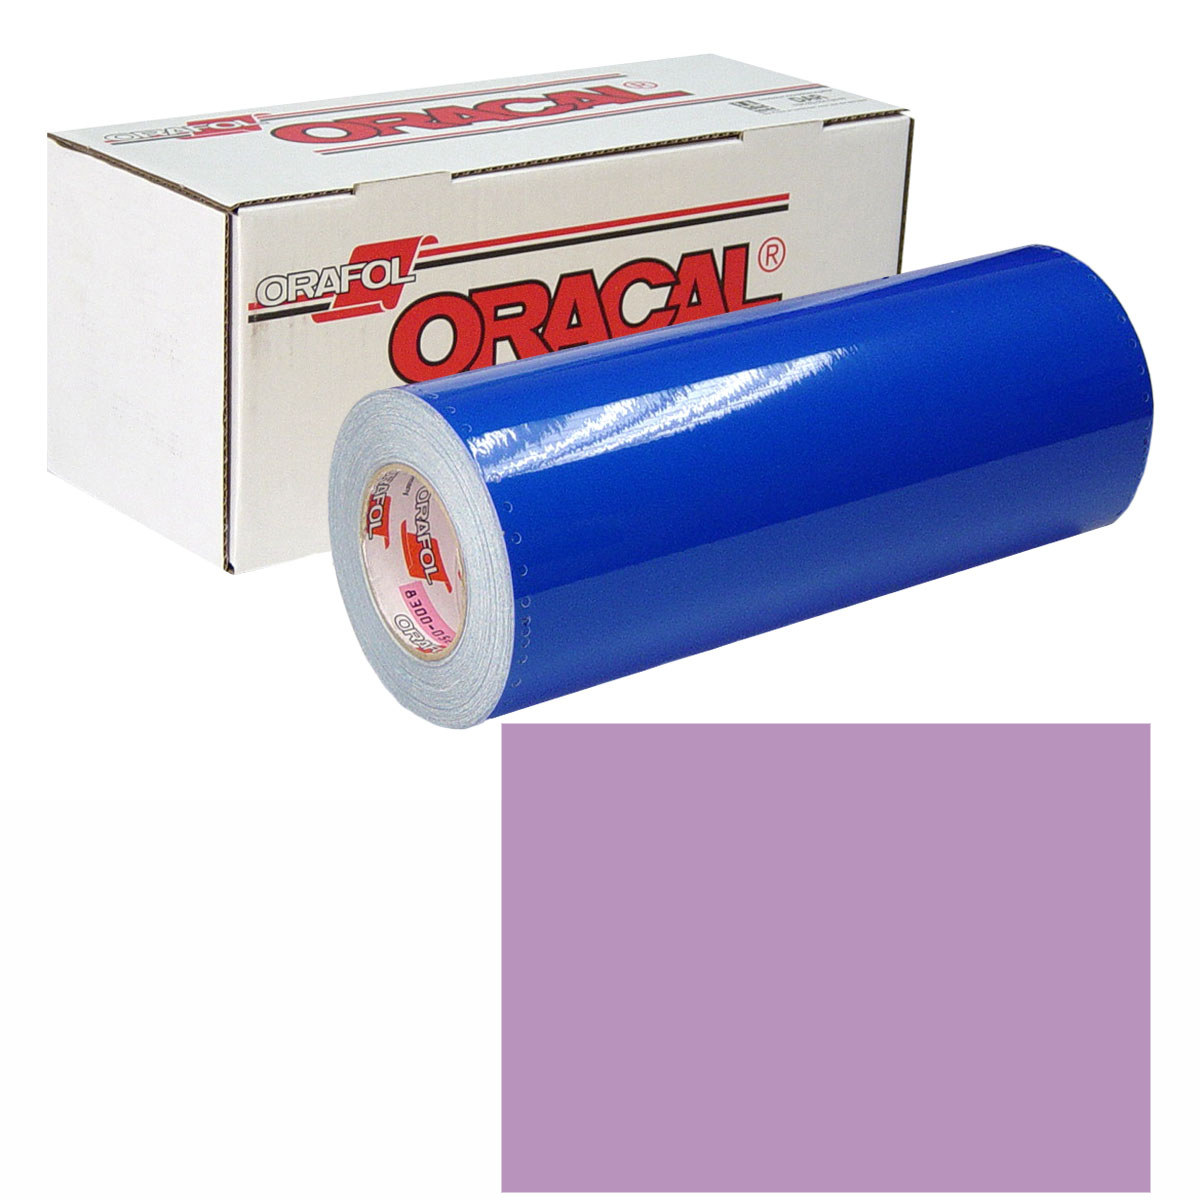 ORACAL 631 Unp 24in X 50yd 042 Lilac